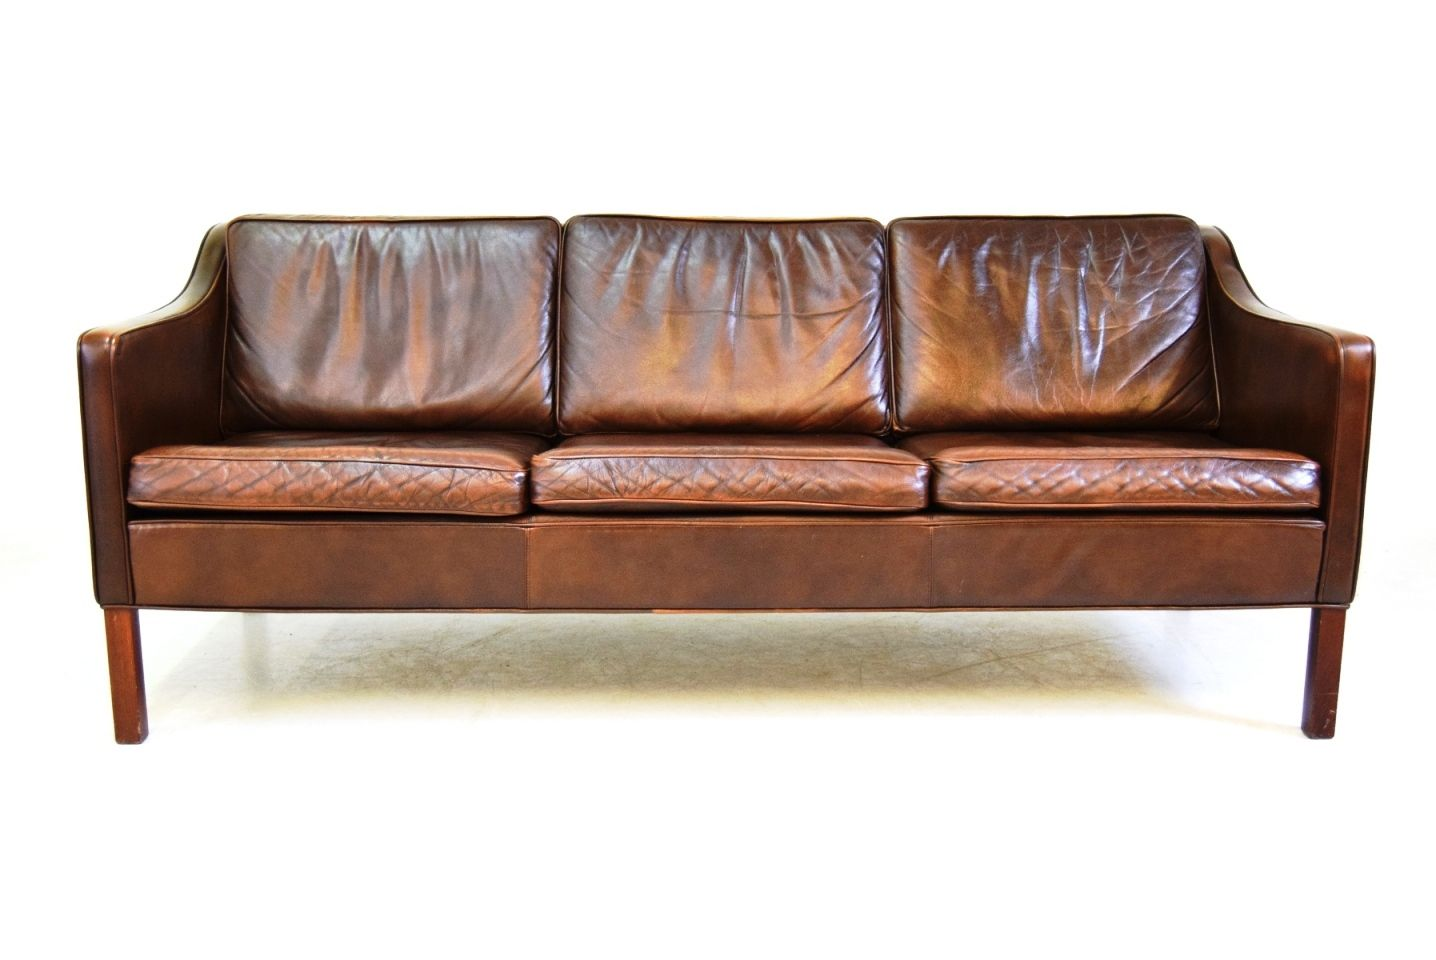 Vintage Brown Leather 3 Seater Sofa From Mogens Hansen For Sale At Pamono